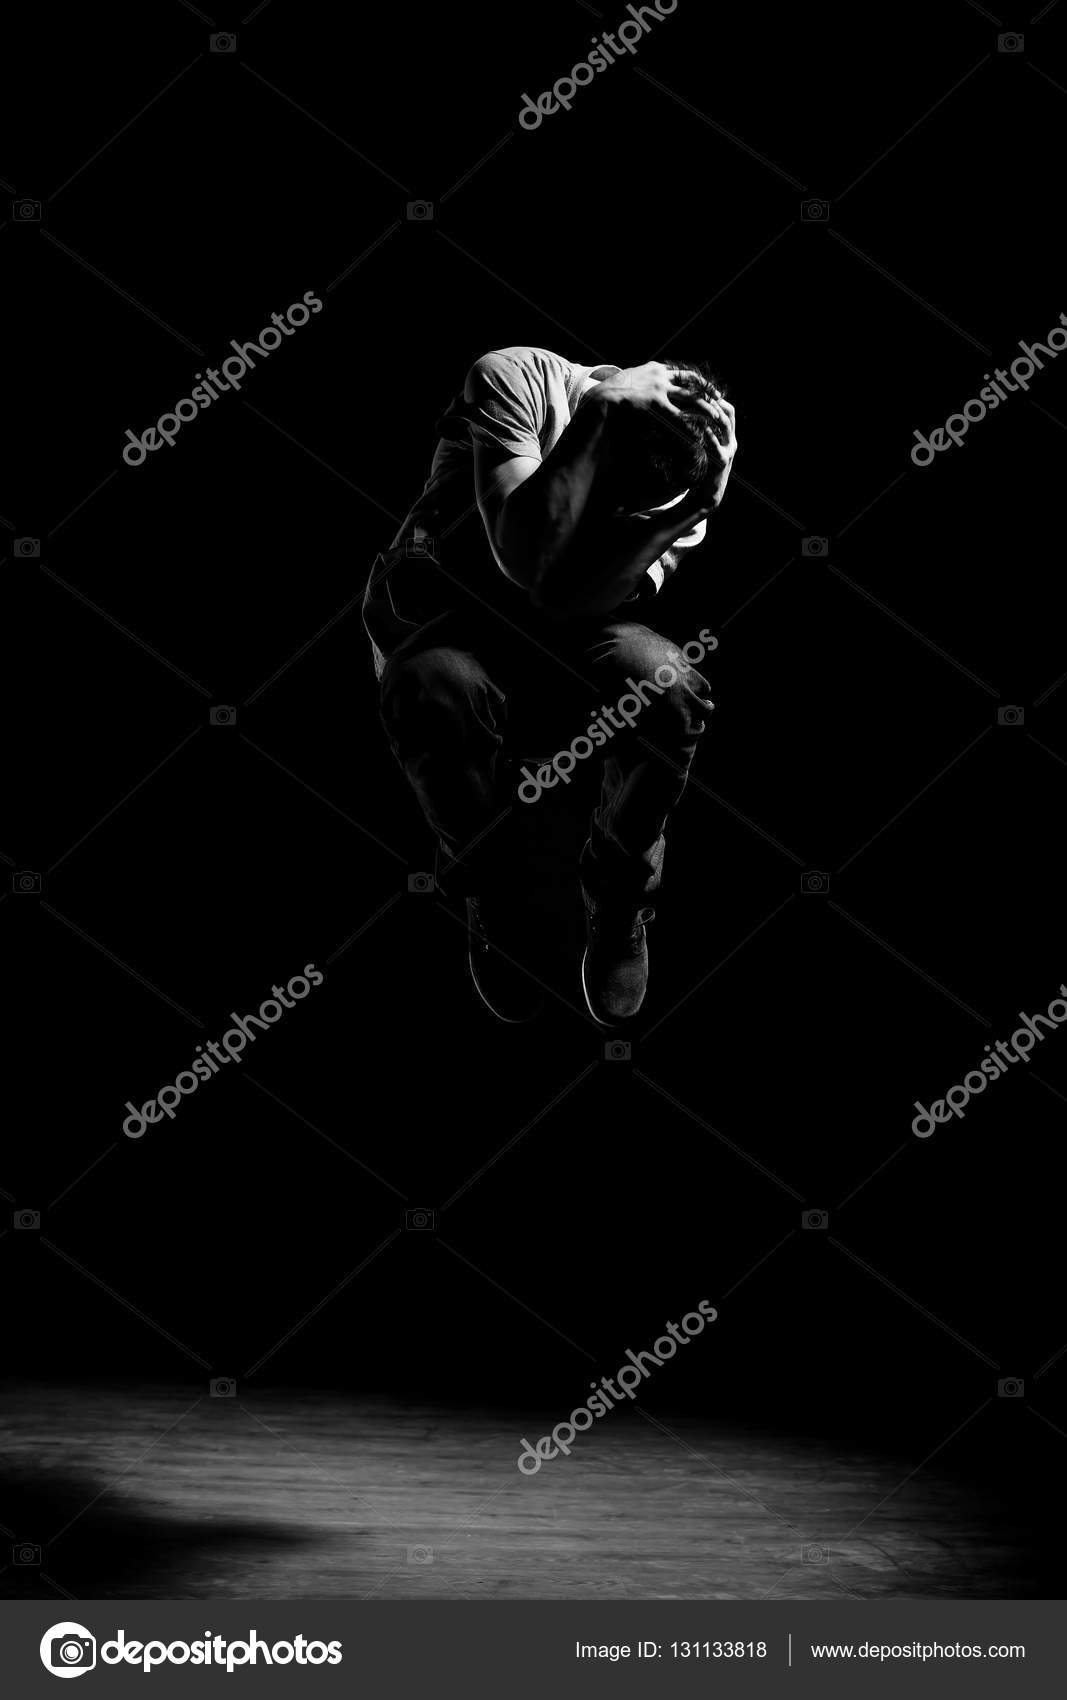 Man in motion on black background studio shot photo by